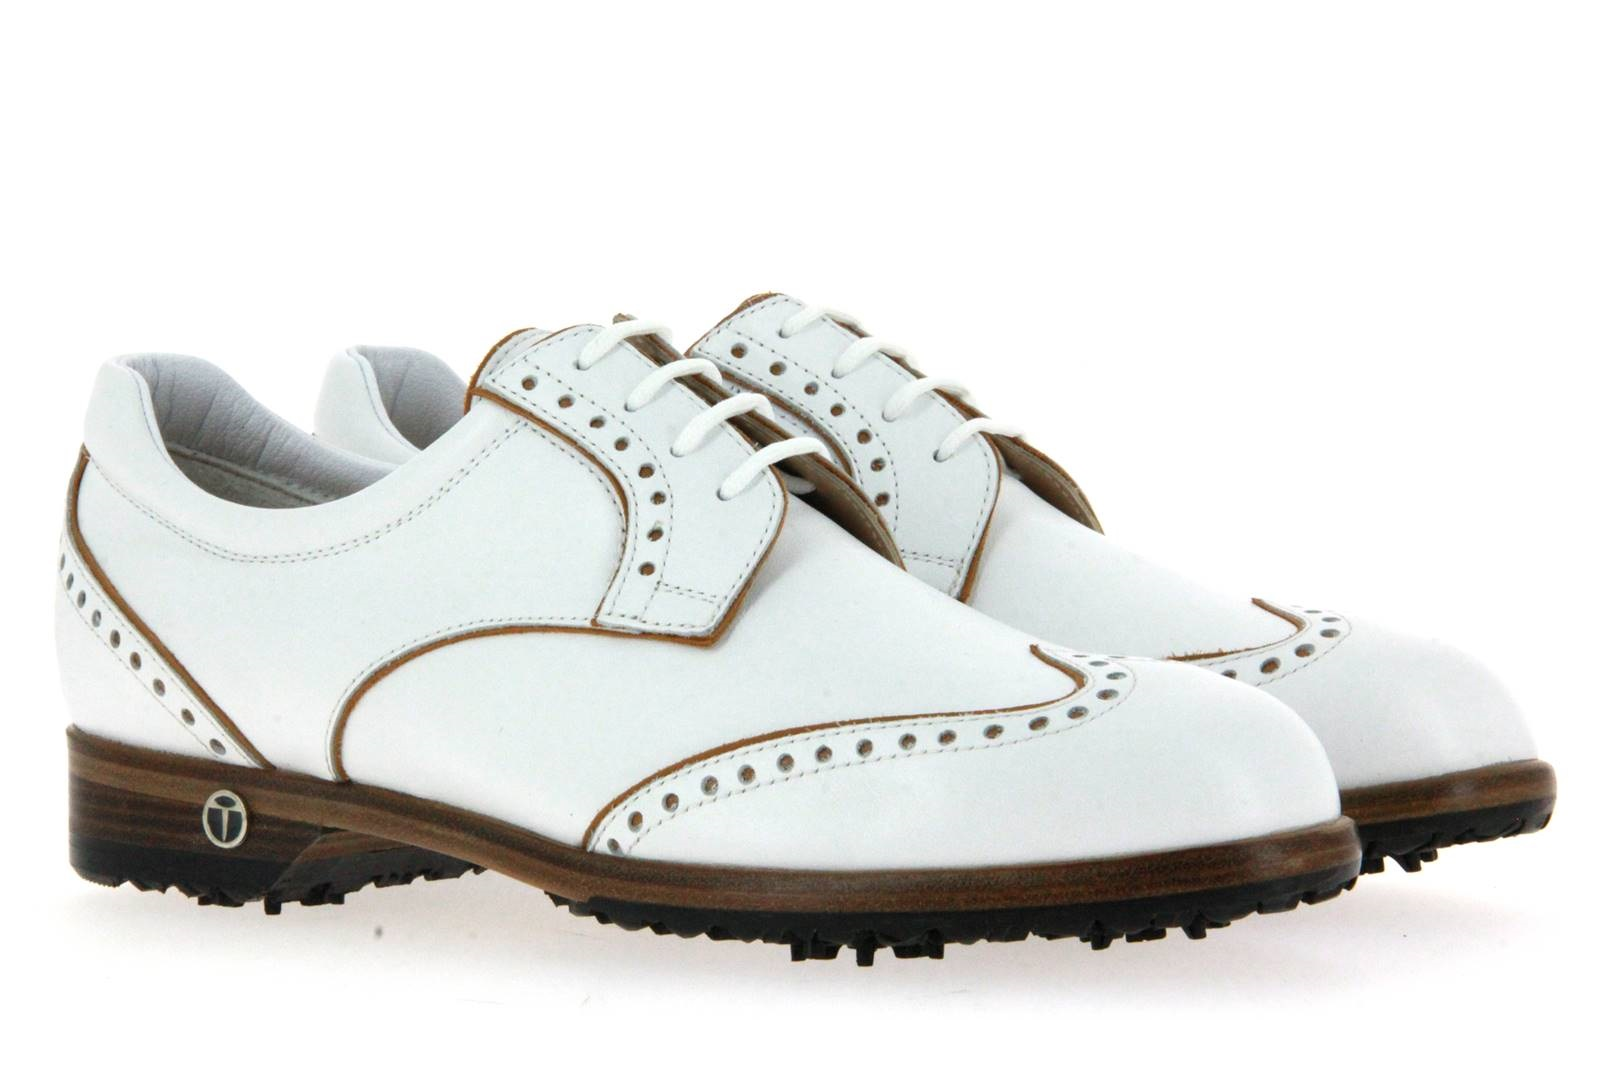 Tee Golf Shoes women's - golf shoes SALLY BIANCO